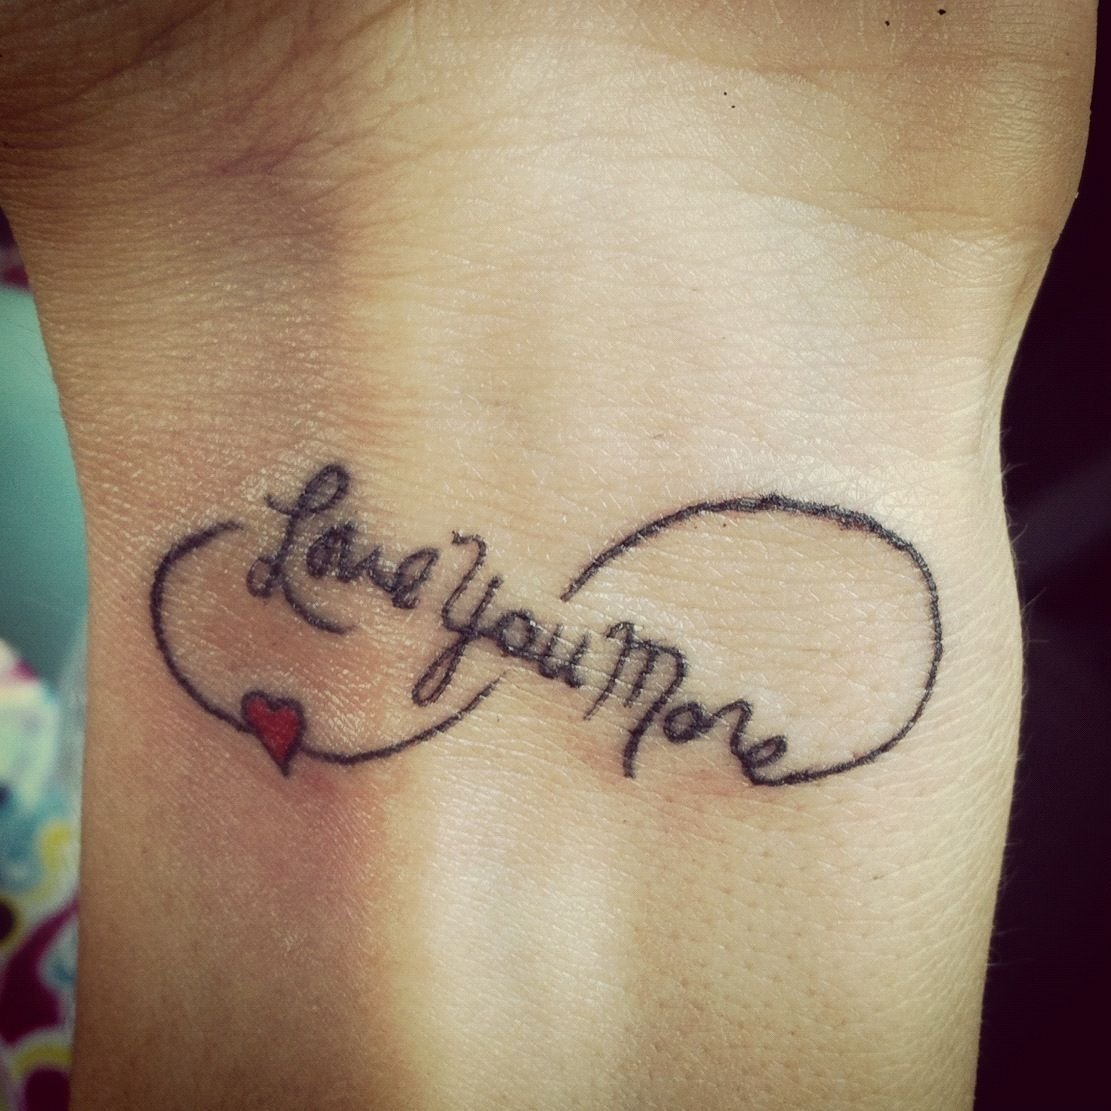 10 Attractive Cute Tattoo Ideas For Moms mom and daughter tattoos reminds me of me and my mom i always tell 1